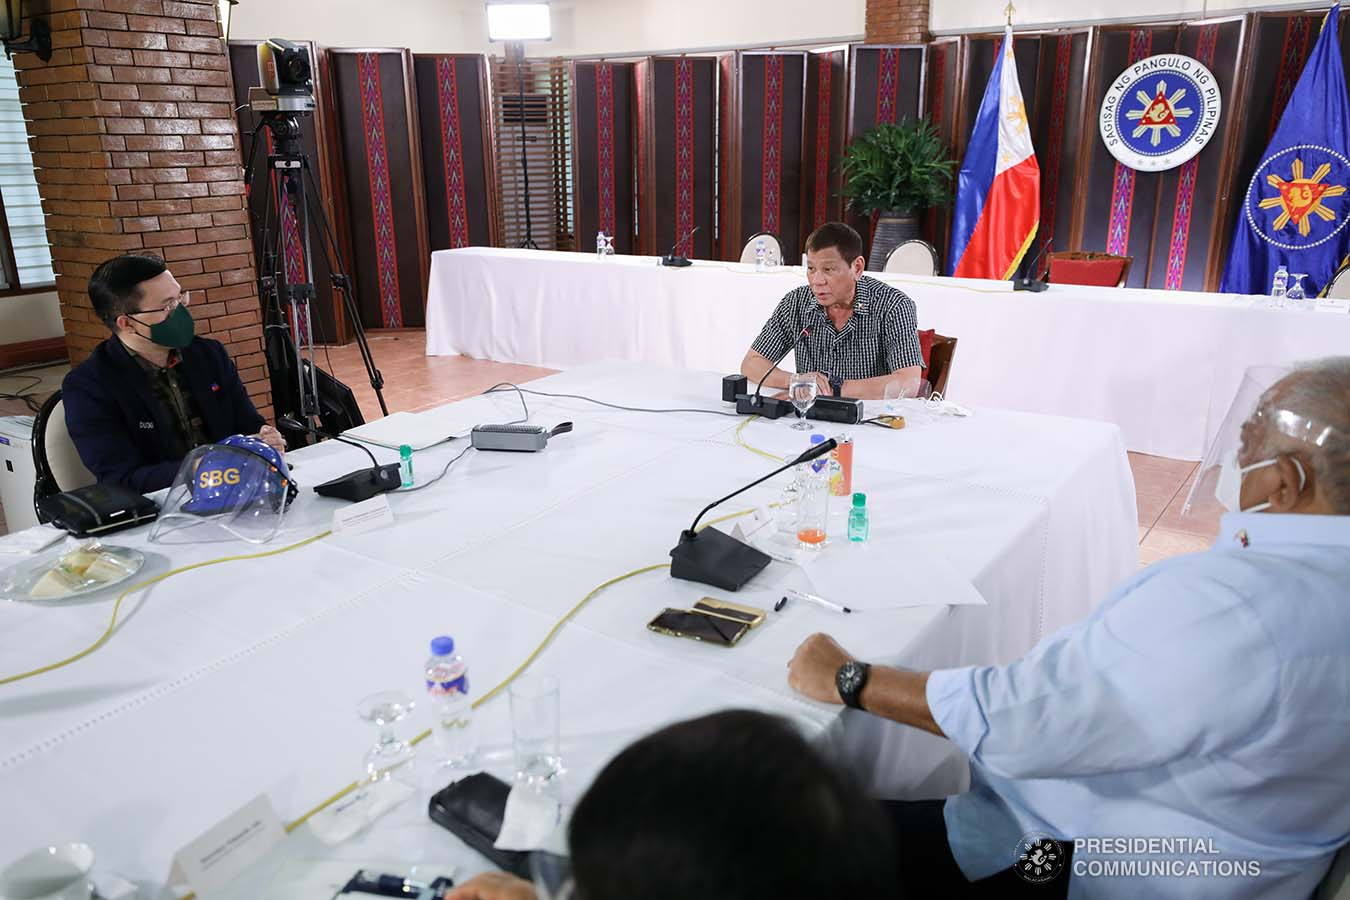 """President Rodrigo Roa Duterte discusses matters with officials of the Philippine National Police and the Armed Forces of the Philippines prior to his announcement at the Malacañang Golf (Malago) Clubhouse in Malacañang Park, Manila on October 8, 2020. The President together with Executive Secretary Salvador Medialdea, Interior and Local Government Secretary Eduardo Año, and Senator Christopher """"Bong"""" Go made an announcement discussing the impasse in Congress and called on its members to resolve the issues on the passing of the national budget for 2021. SIMEON CELI/ PRESIDENTIAL PHOTO"""